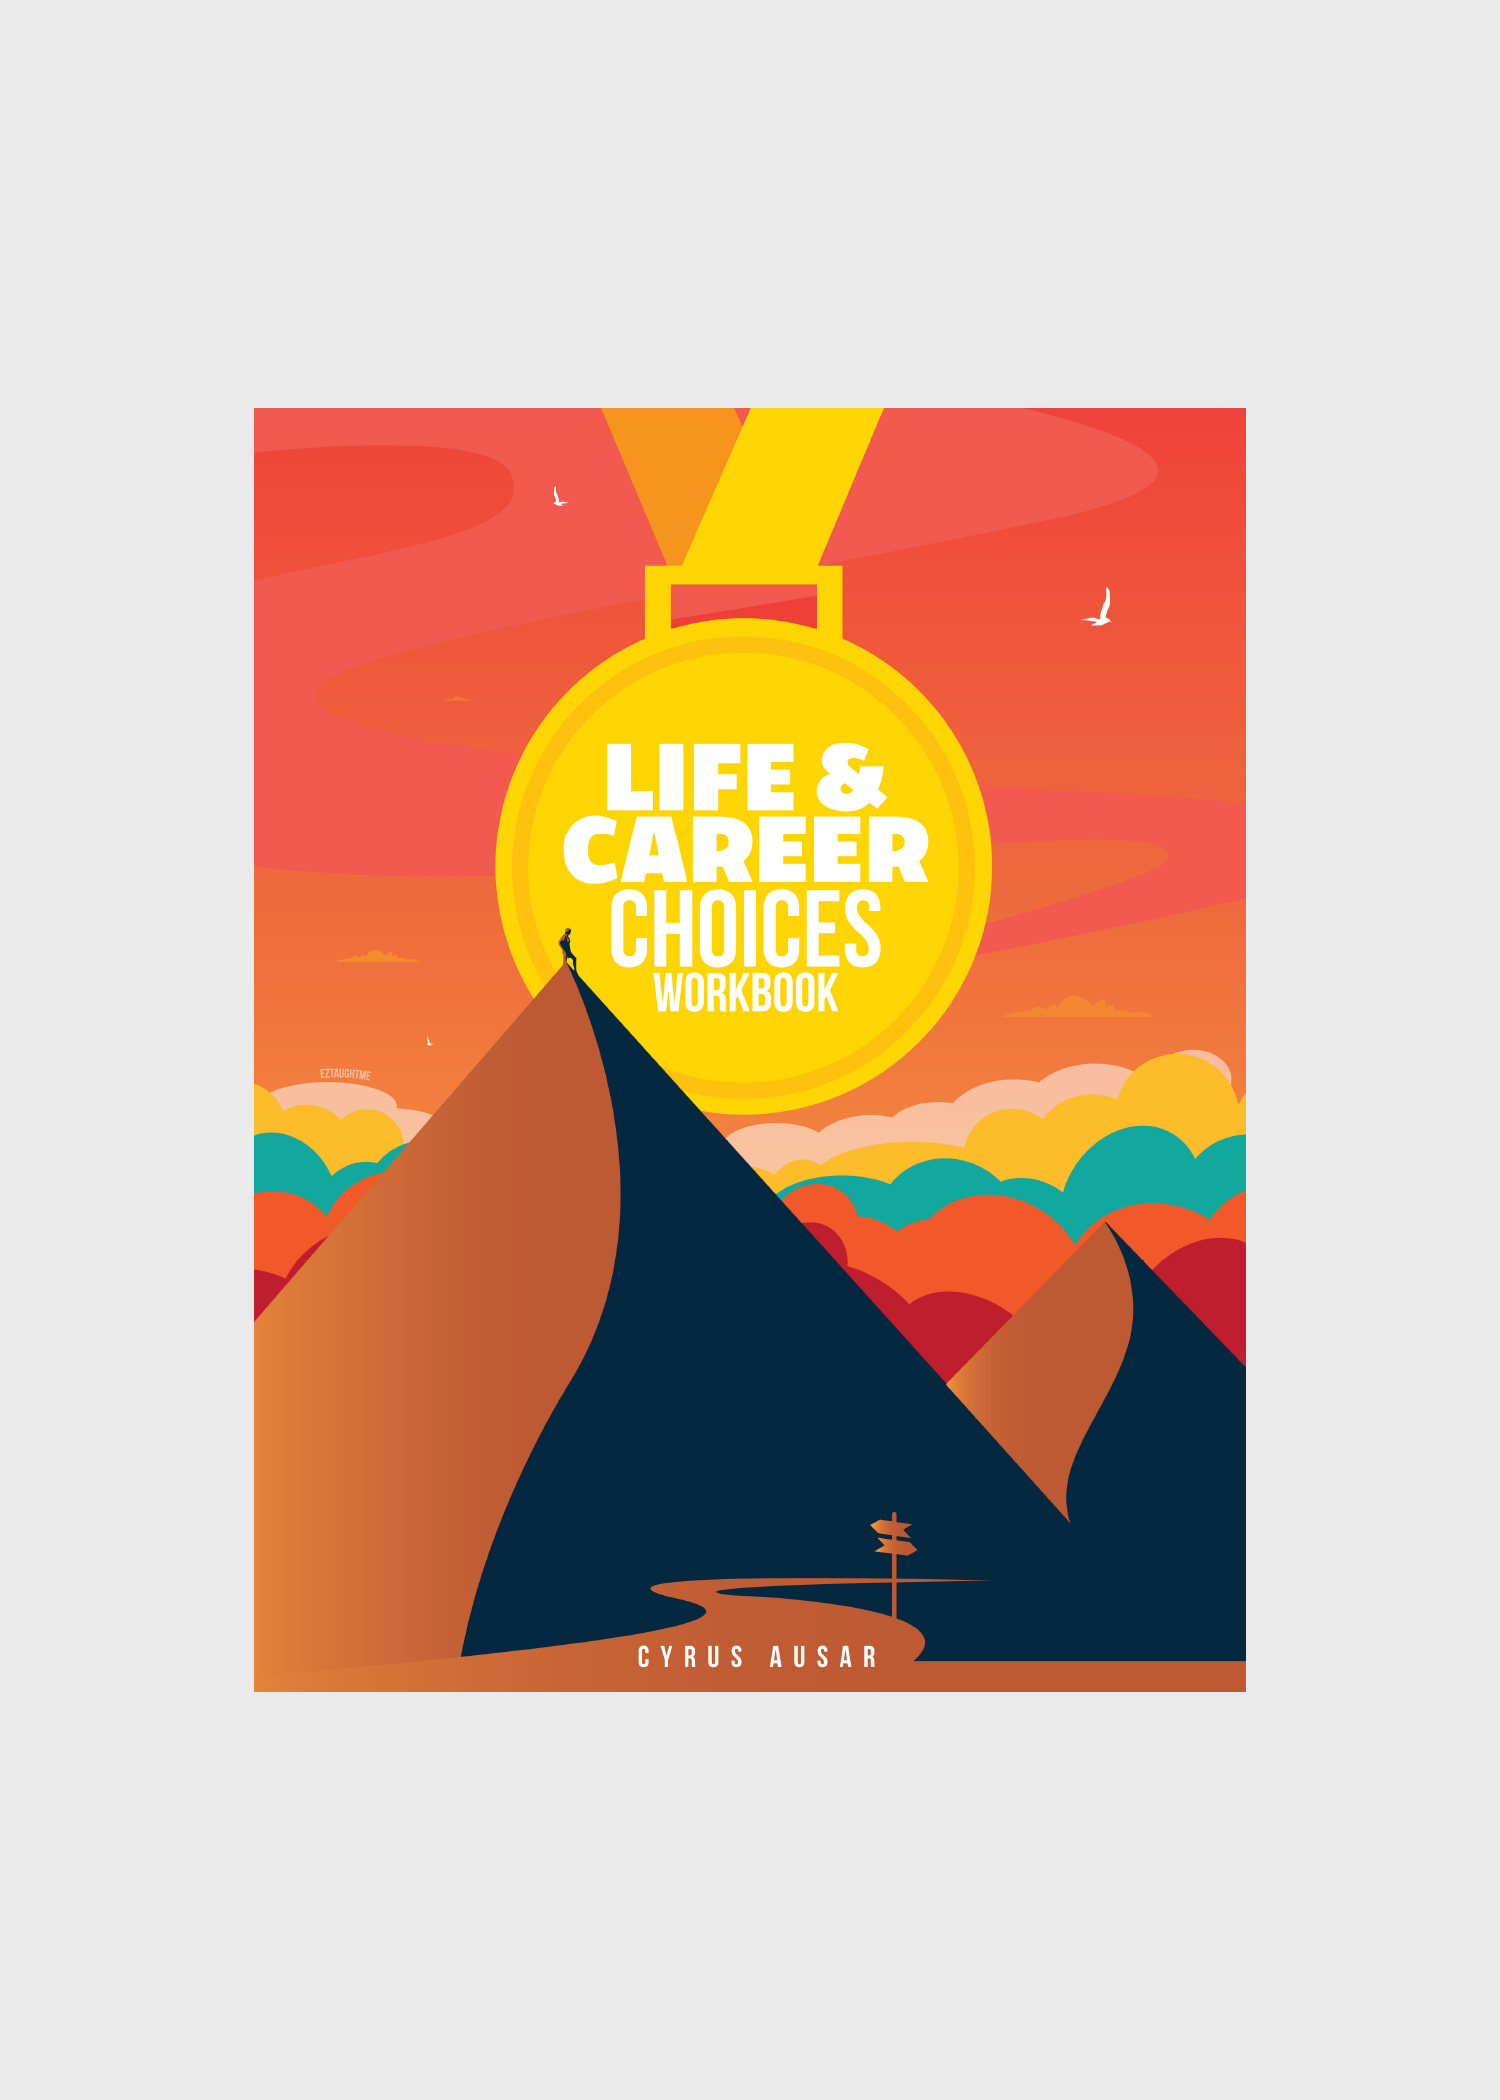 Life & Career Choice Workbook